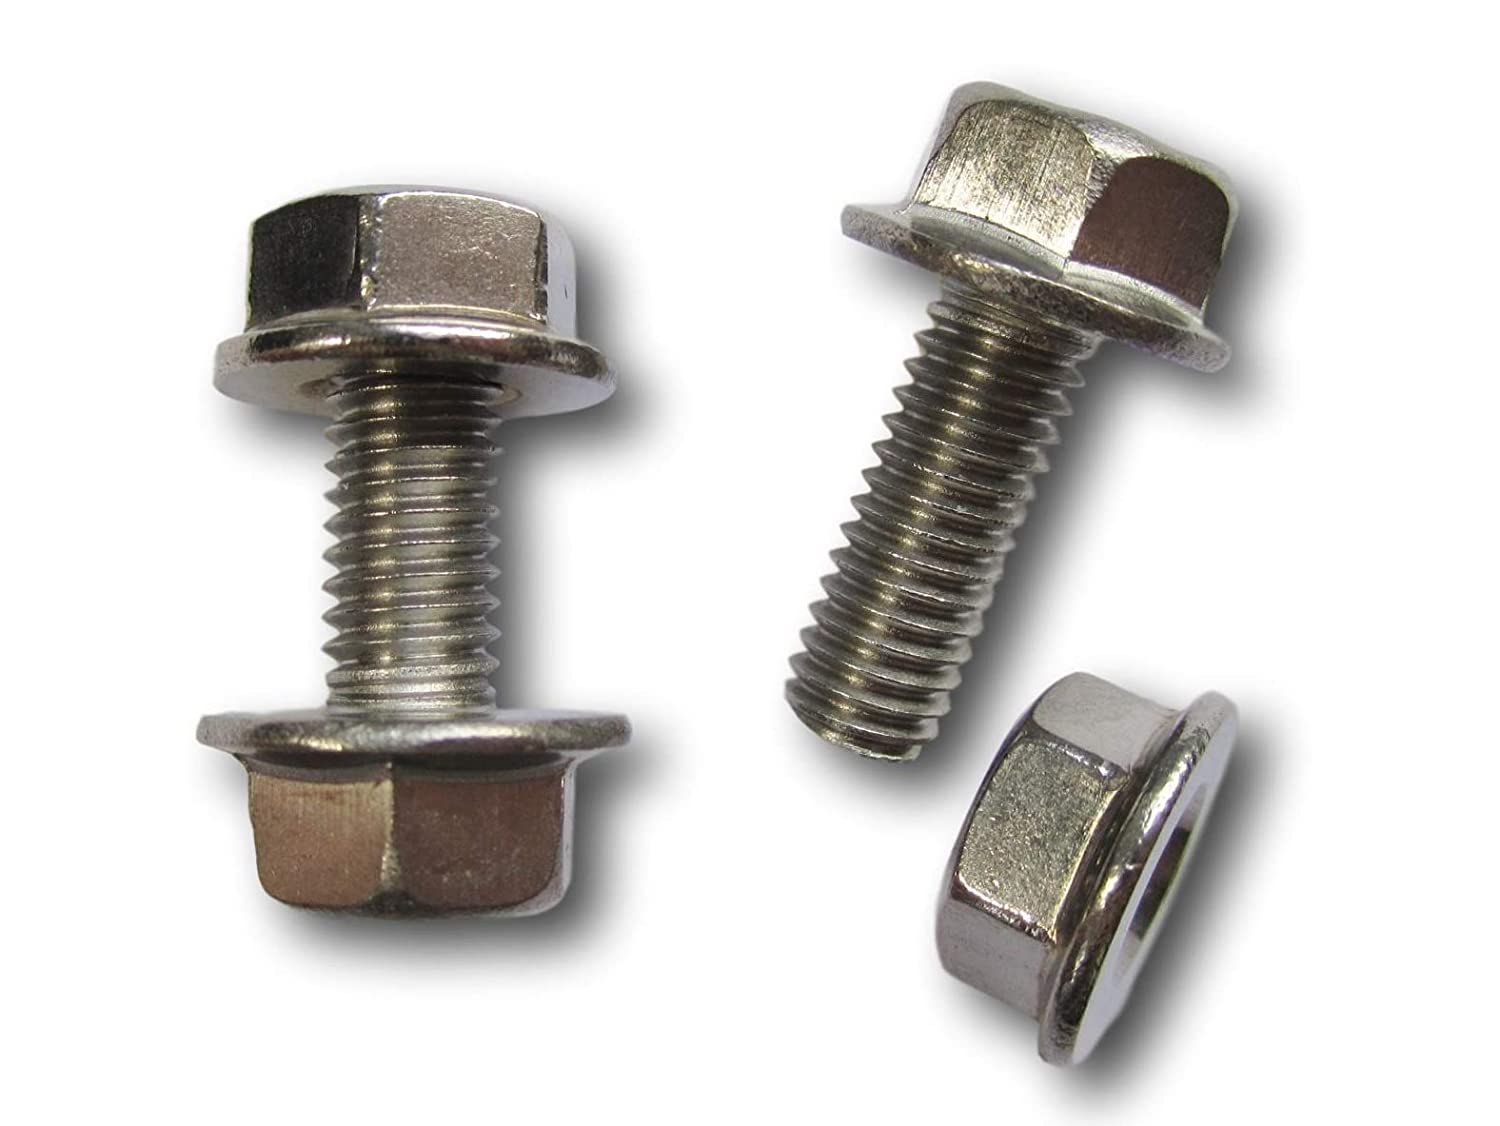 19M7775 14M7303 Replacement Battery Terminal Bolts Nuts Stainless Steel (2-Pack) for John Deere